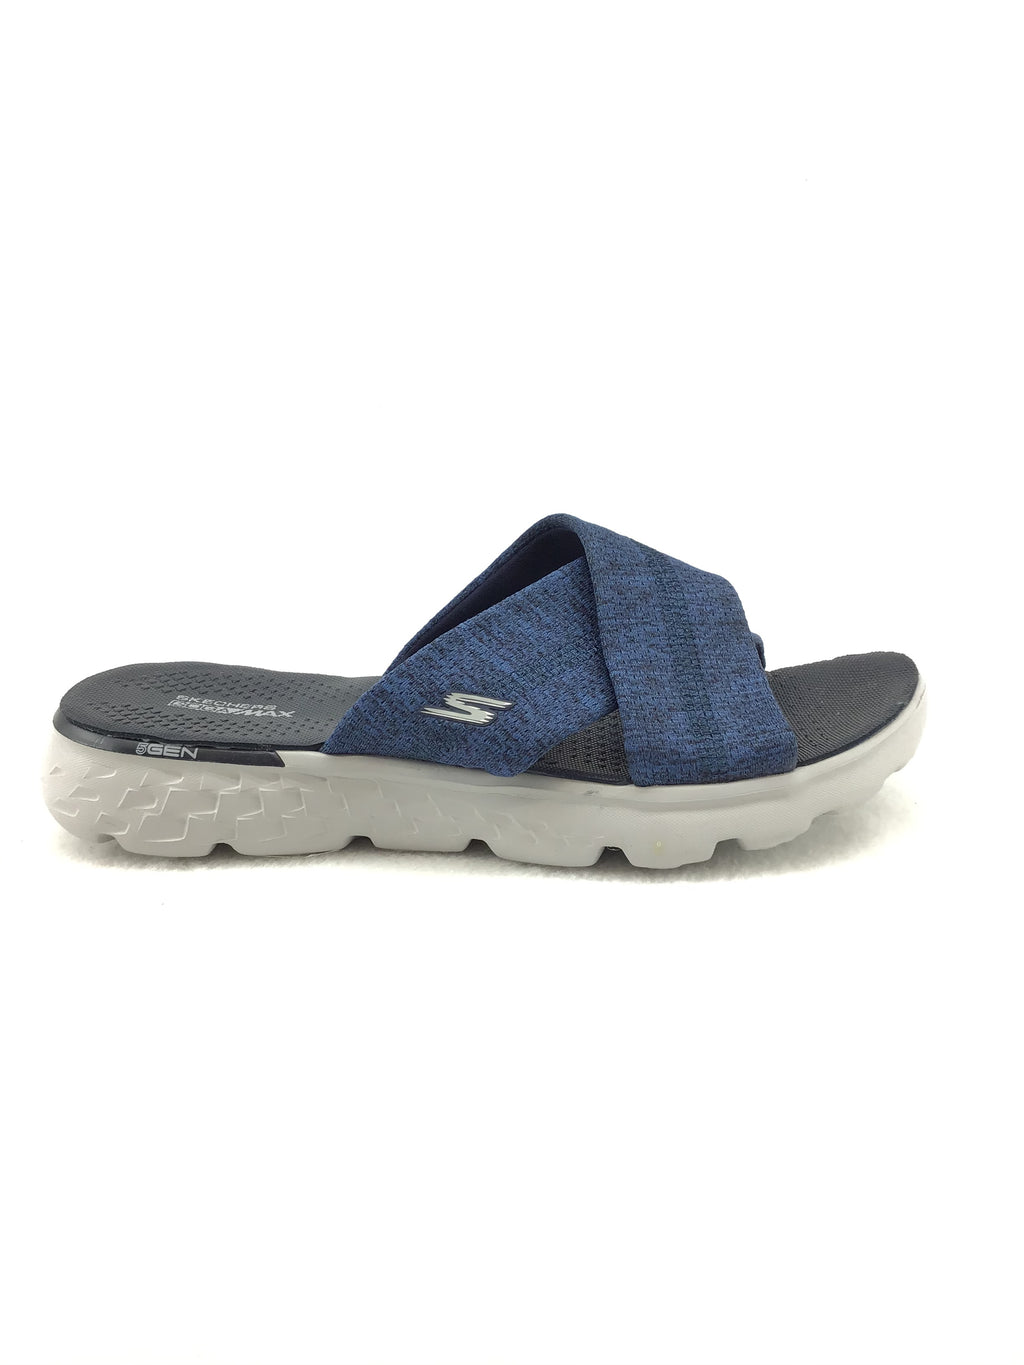 Skechers Goga Max Sandals Size 9